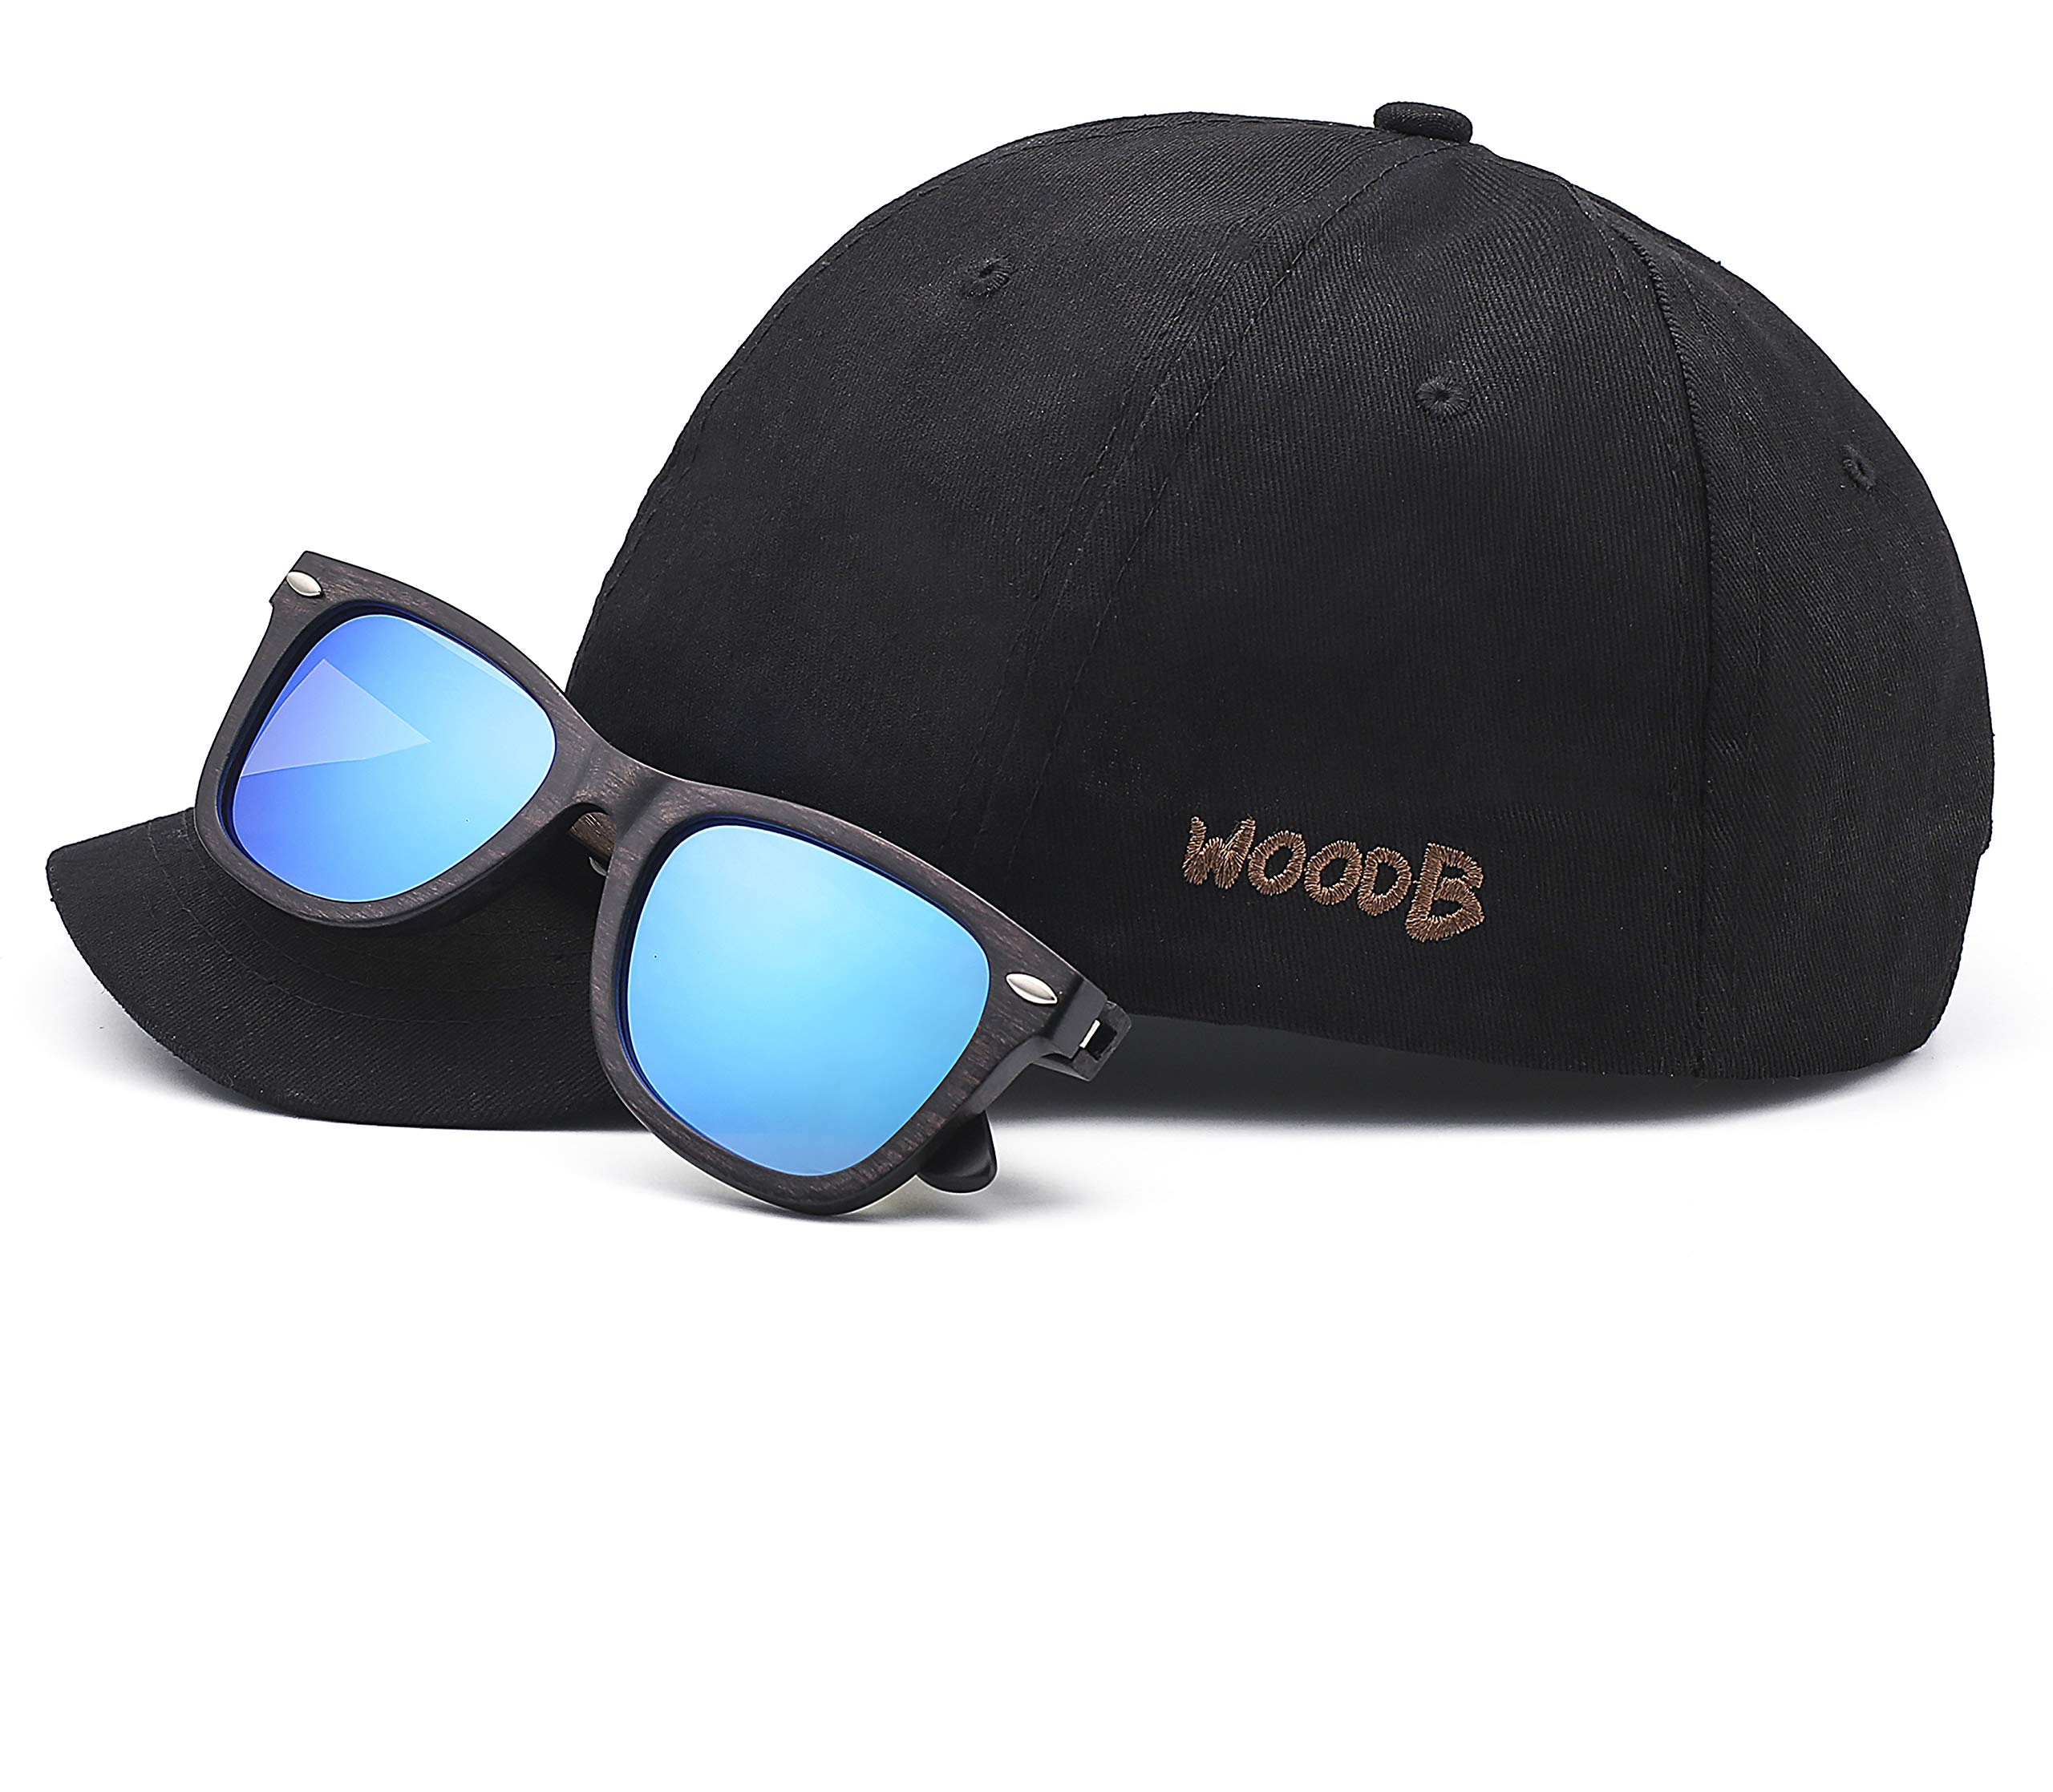 Real Wood Sunglasses Wayfarer UV-400 Polarized Lenses Plus Cap in Gift box by WOODB (Image #1)